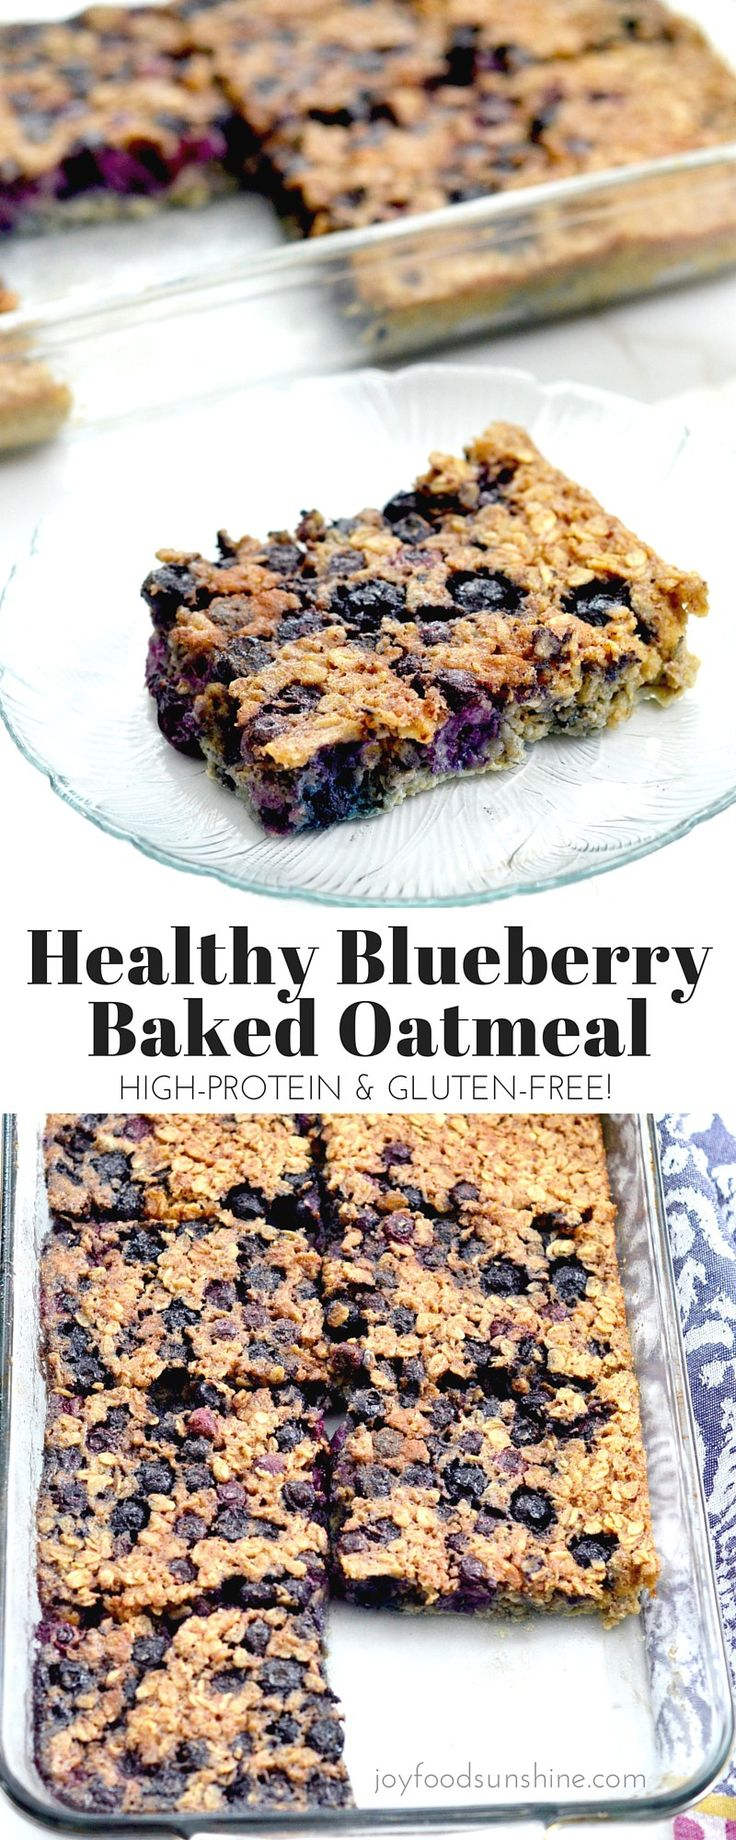 Baked blueberry oatmeal recipe! The addition of Greek yogurt and almond meal make this a protein-rich breakfast! Plus it's gluten-free, refined-sugar free and feeds a crowd!